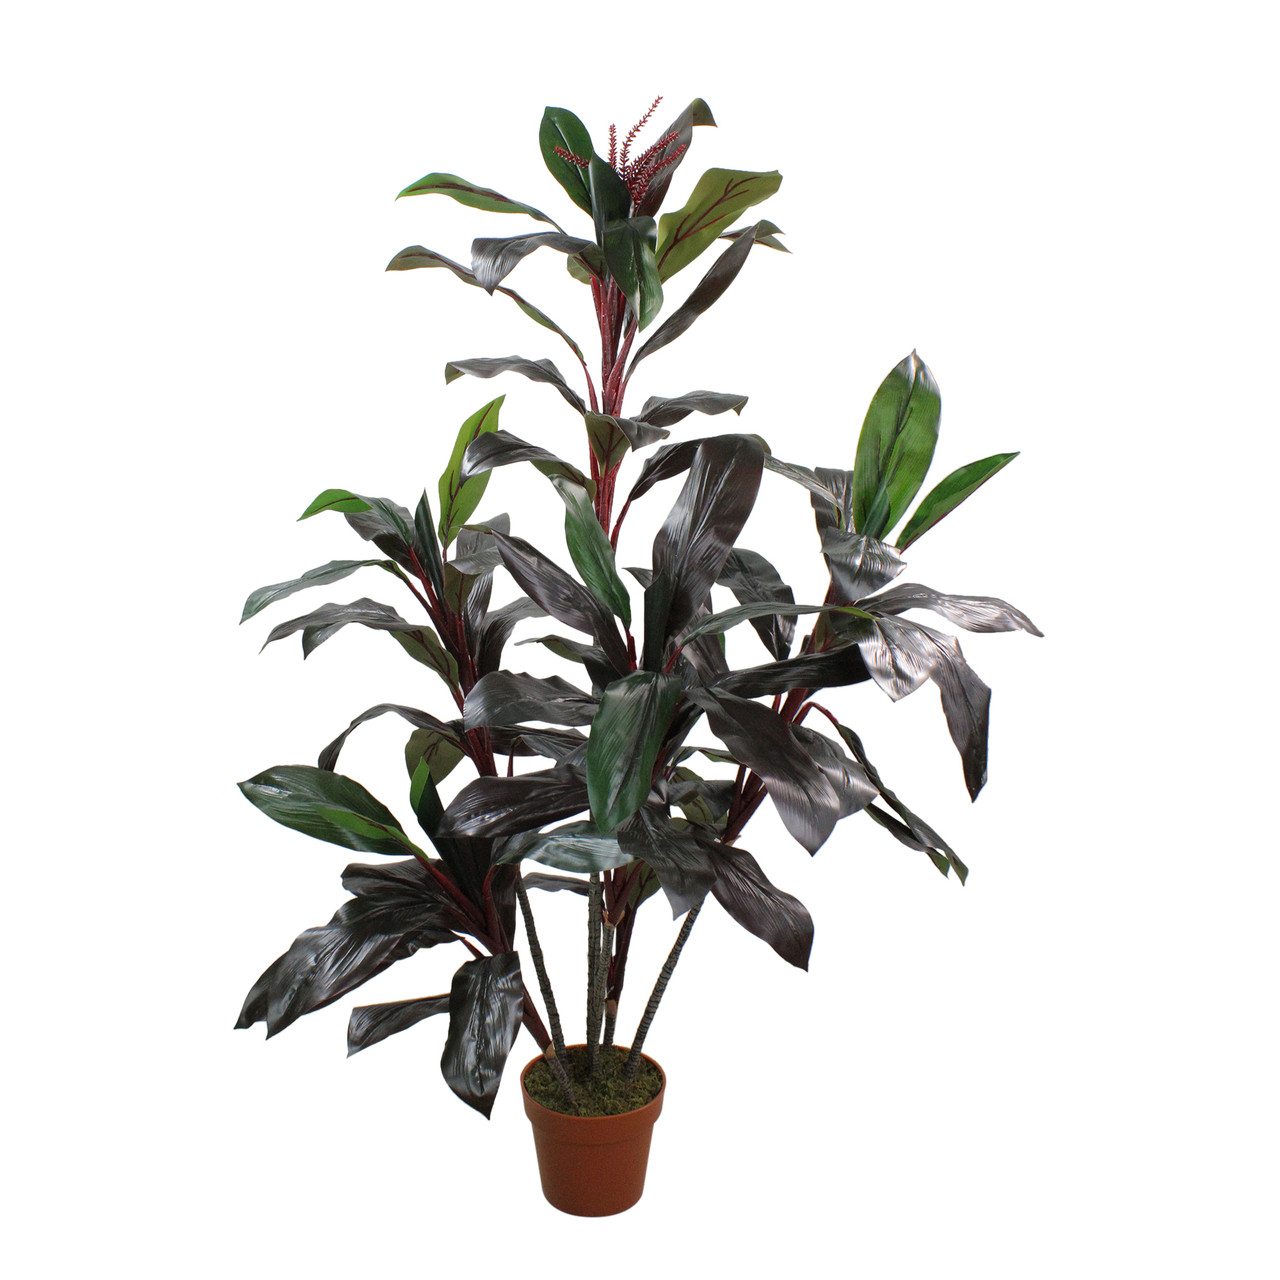 red bonsai plant, red fittonia plant, red draceane, red dieffenbachia plant, red zinnia plant, cordyline plant, red pothos plant, red calibrachoa plant, red spathiphyllum plant, red ferns plant, red peperomia plant, red caladium plant, red echeveria plant, red dracaena marginata, red edged dracaena, red aphelandra plant, red clivia plant, red sedum plant, red begonia plant, red sansevieria plant, on red dracaena house plant